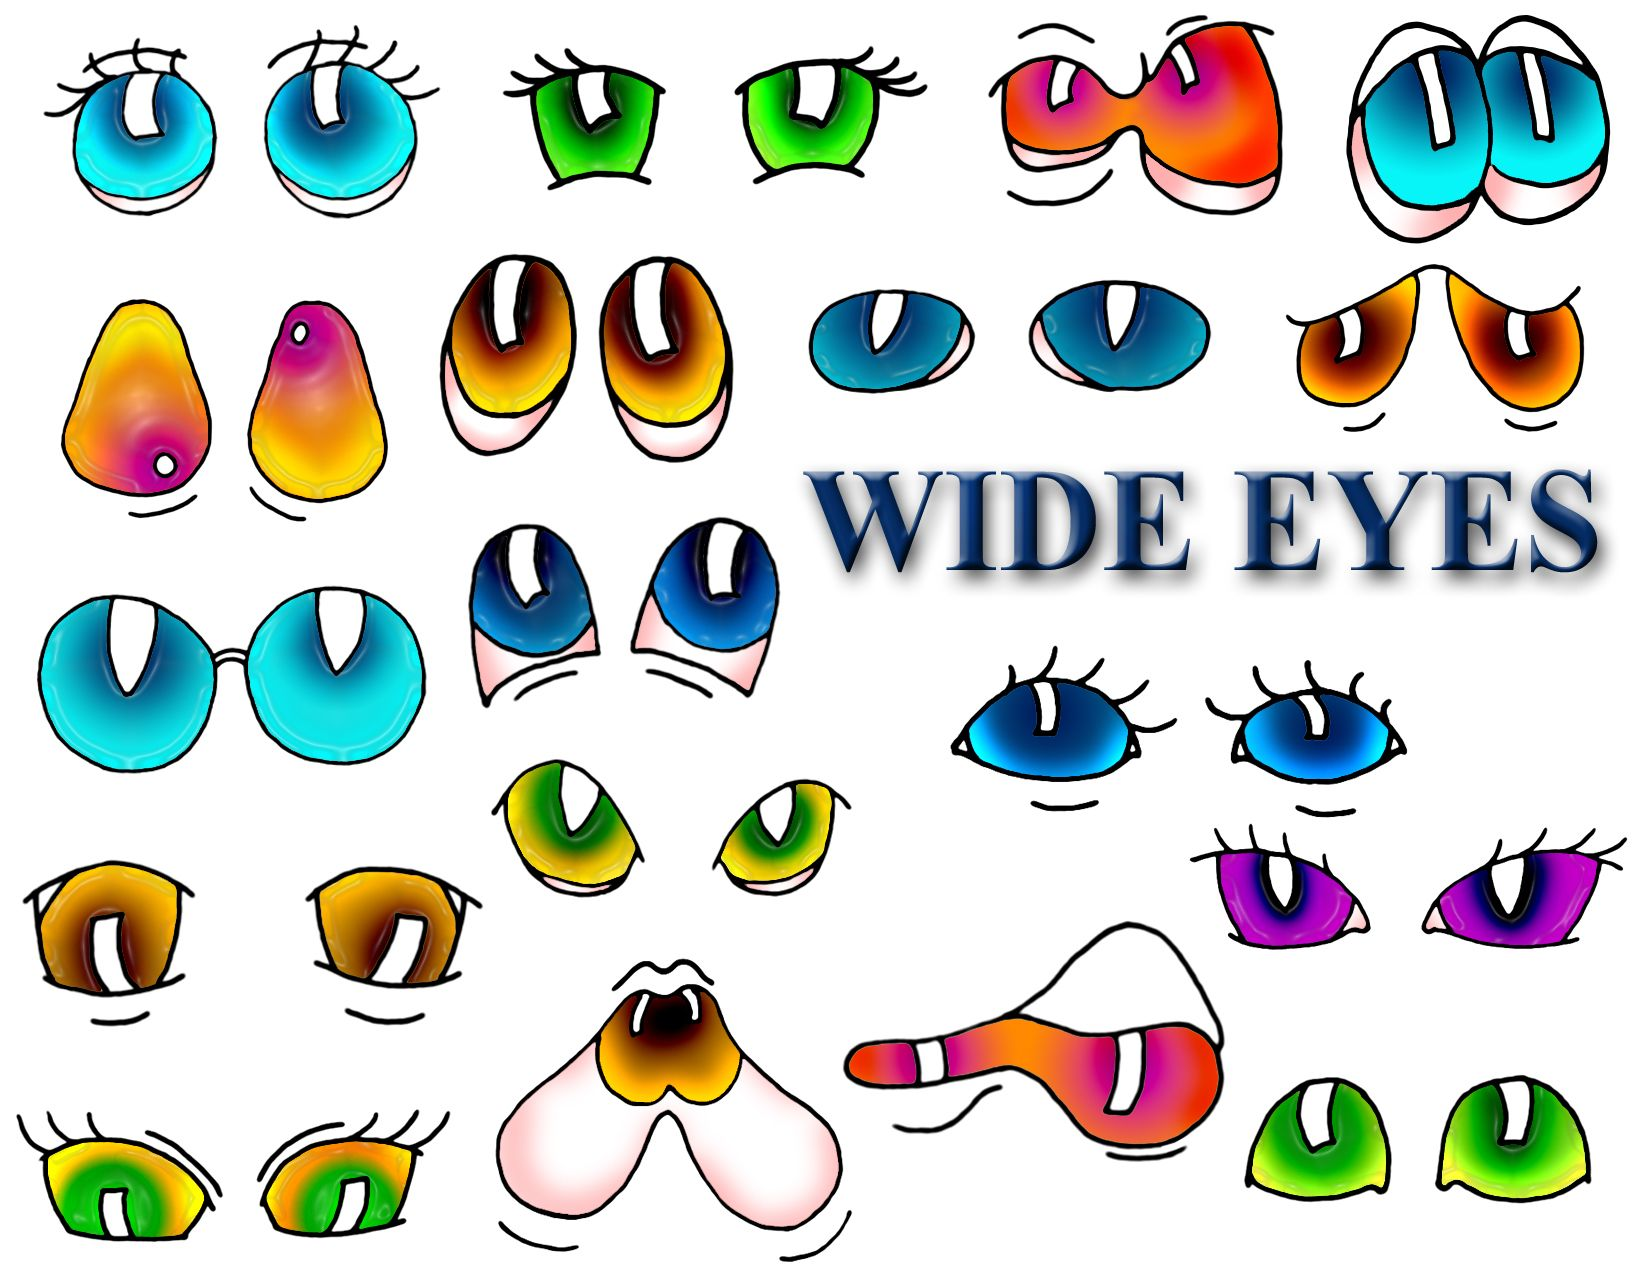 hight resolution of halloween clipart spooky eyes clip art monster eye lurking in the dark creepy scary hallowe en for personal and commercial use